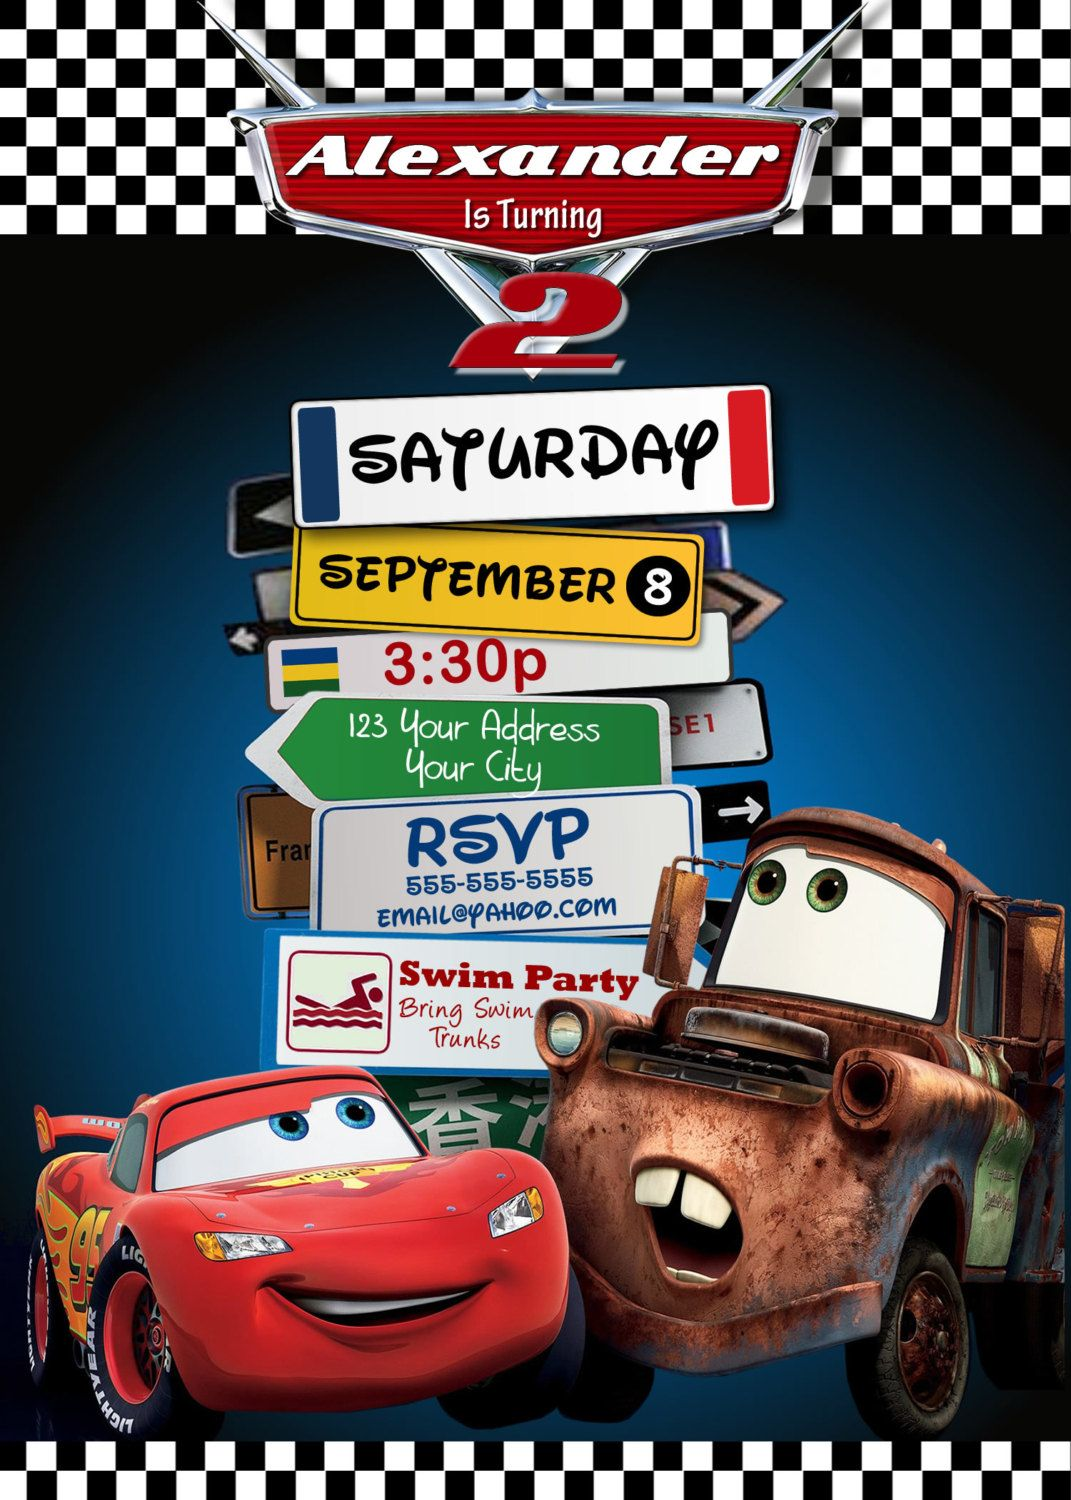 disney pixar cars lightning mcqueen mater birthday party disney pixar cars lightning mcqueen mater birthday party invitations pixar cars printable invitation